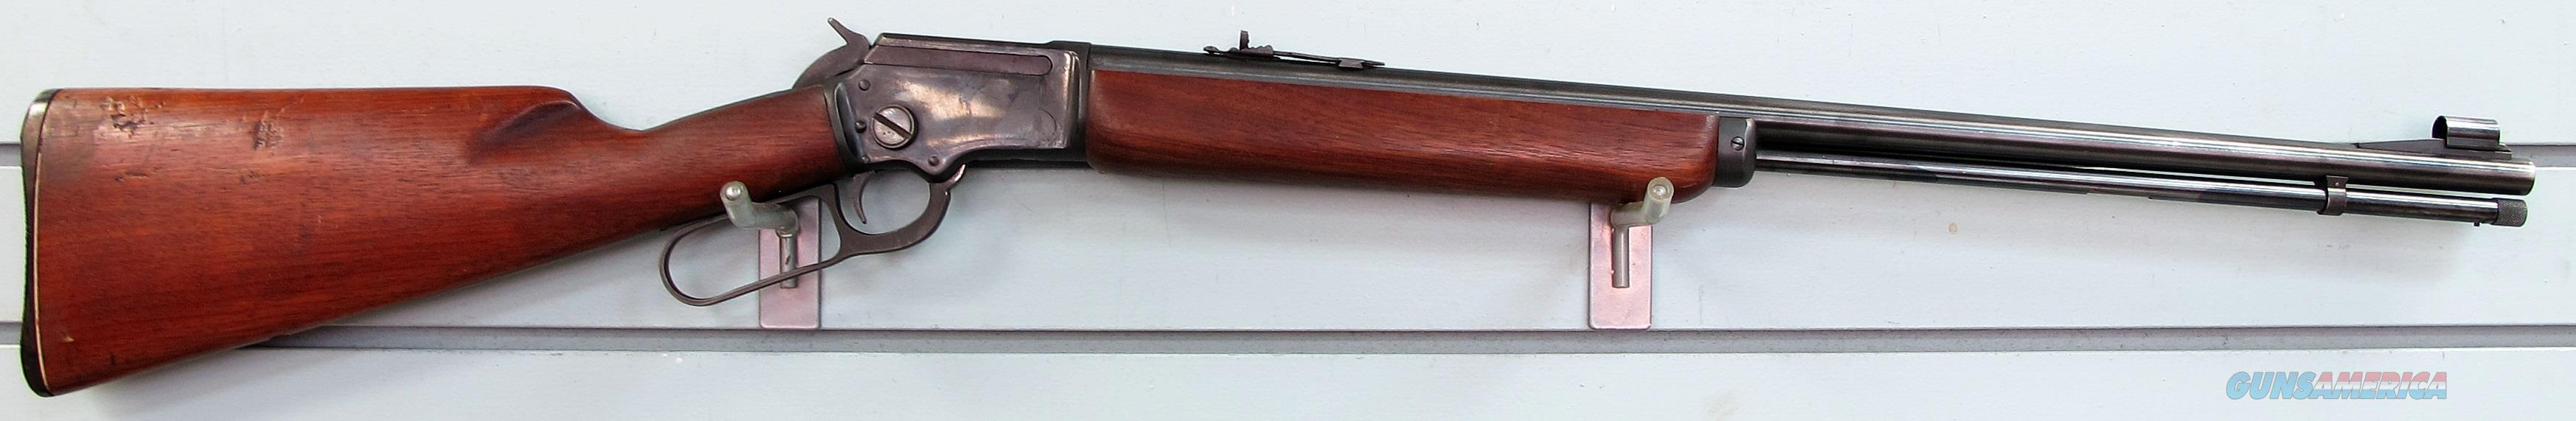 MARLIN 39A MOUNTIE  Guns > Rifles > Marlin Rifles > Modern > Lever Action